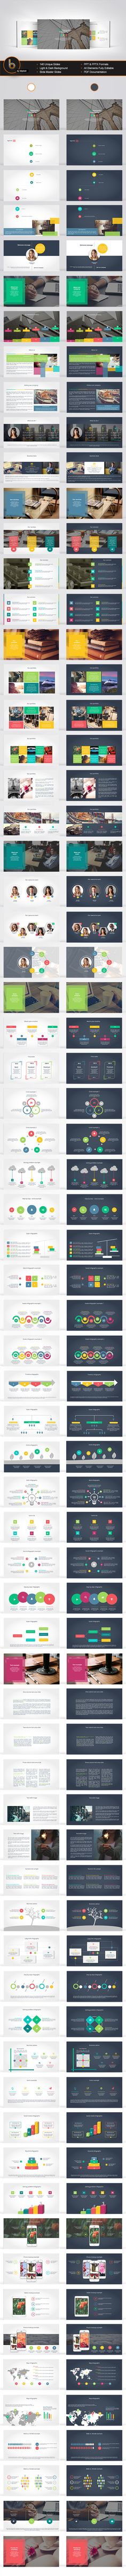 Energy - PowerPoint Presentation Template #design Download: http://graphicriver.net/item/energy-powerpoint-presentation-template/12024944?ref=ksioks